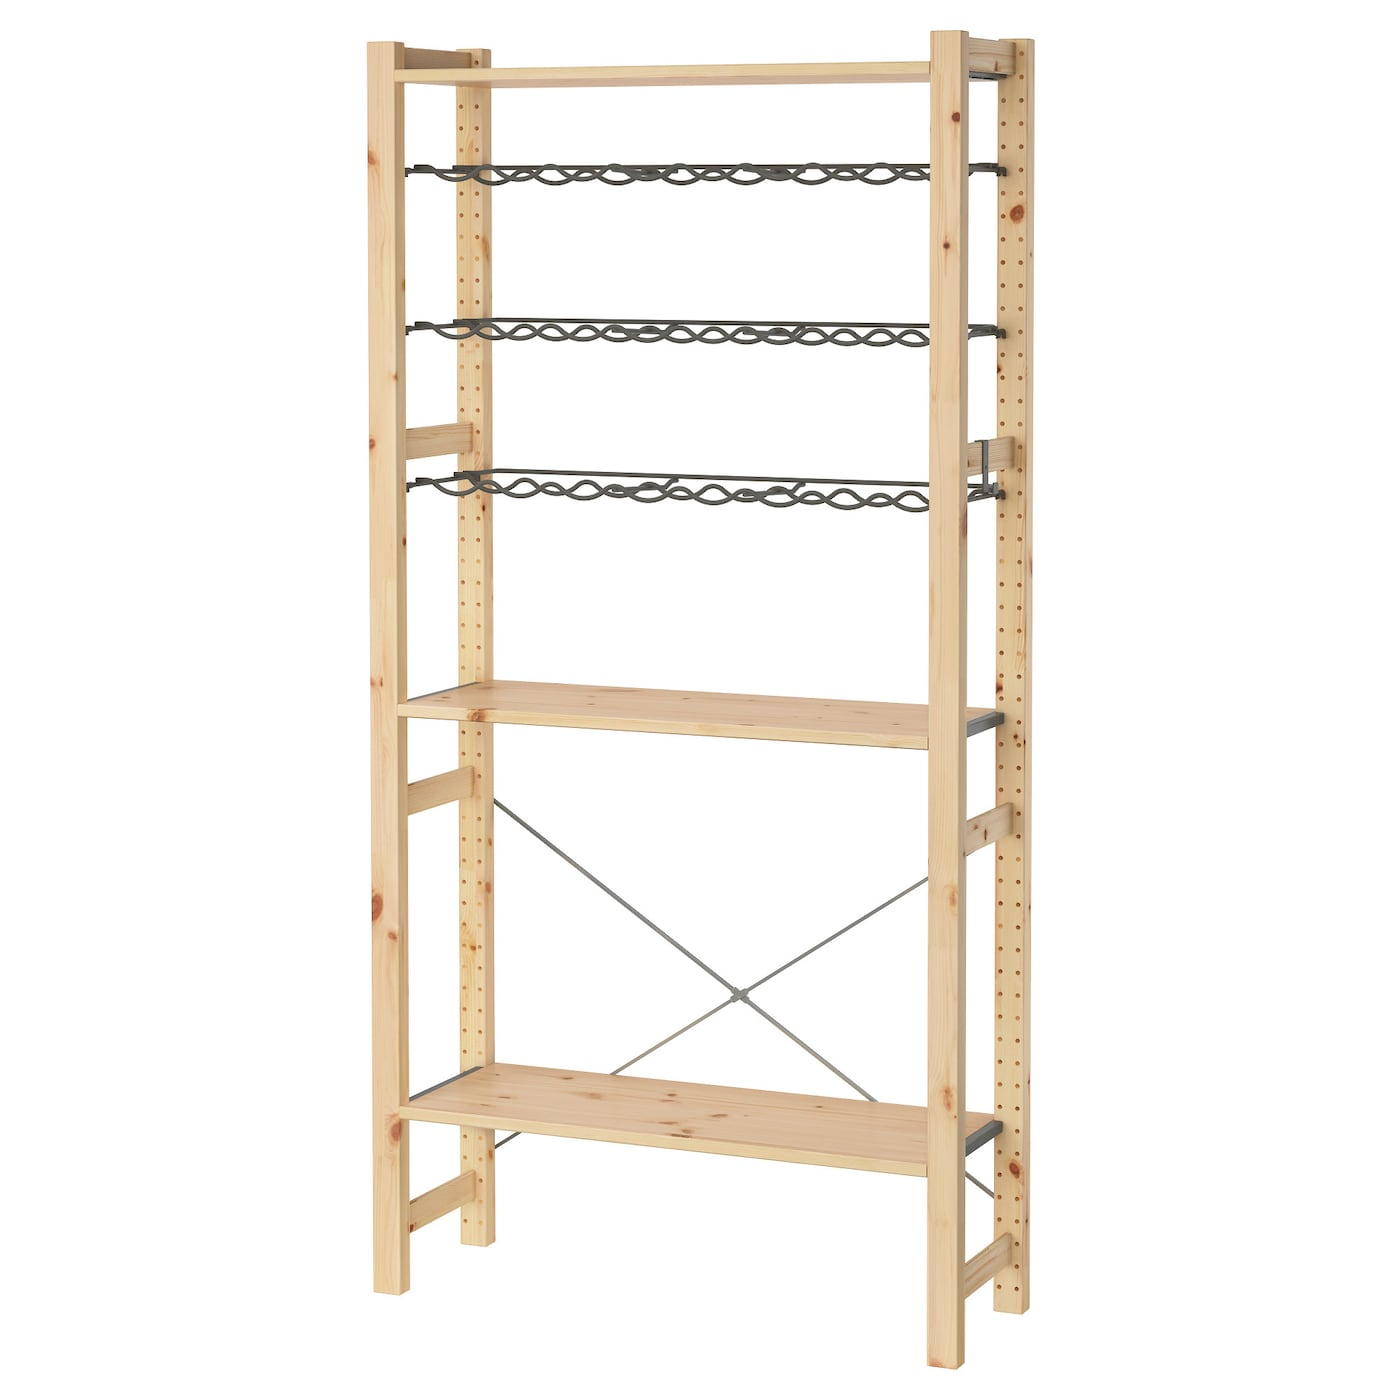 IKEA IVAR 1 section/shelves/bottle racks You can move shelves and adapt spacing to suit your needs.